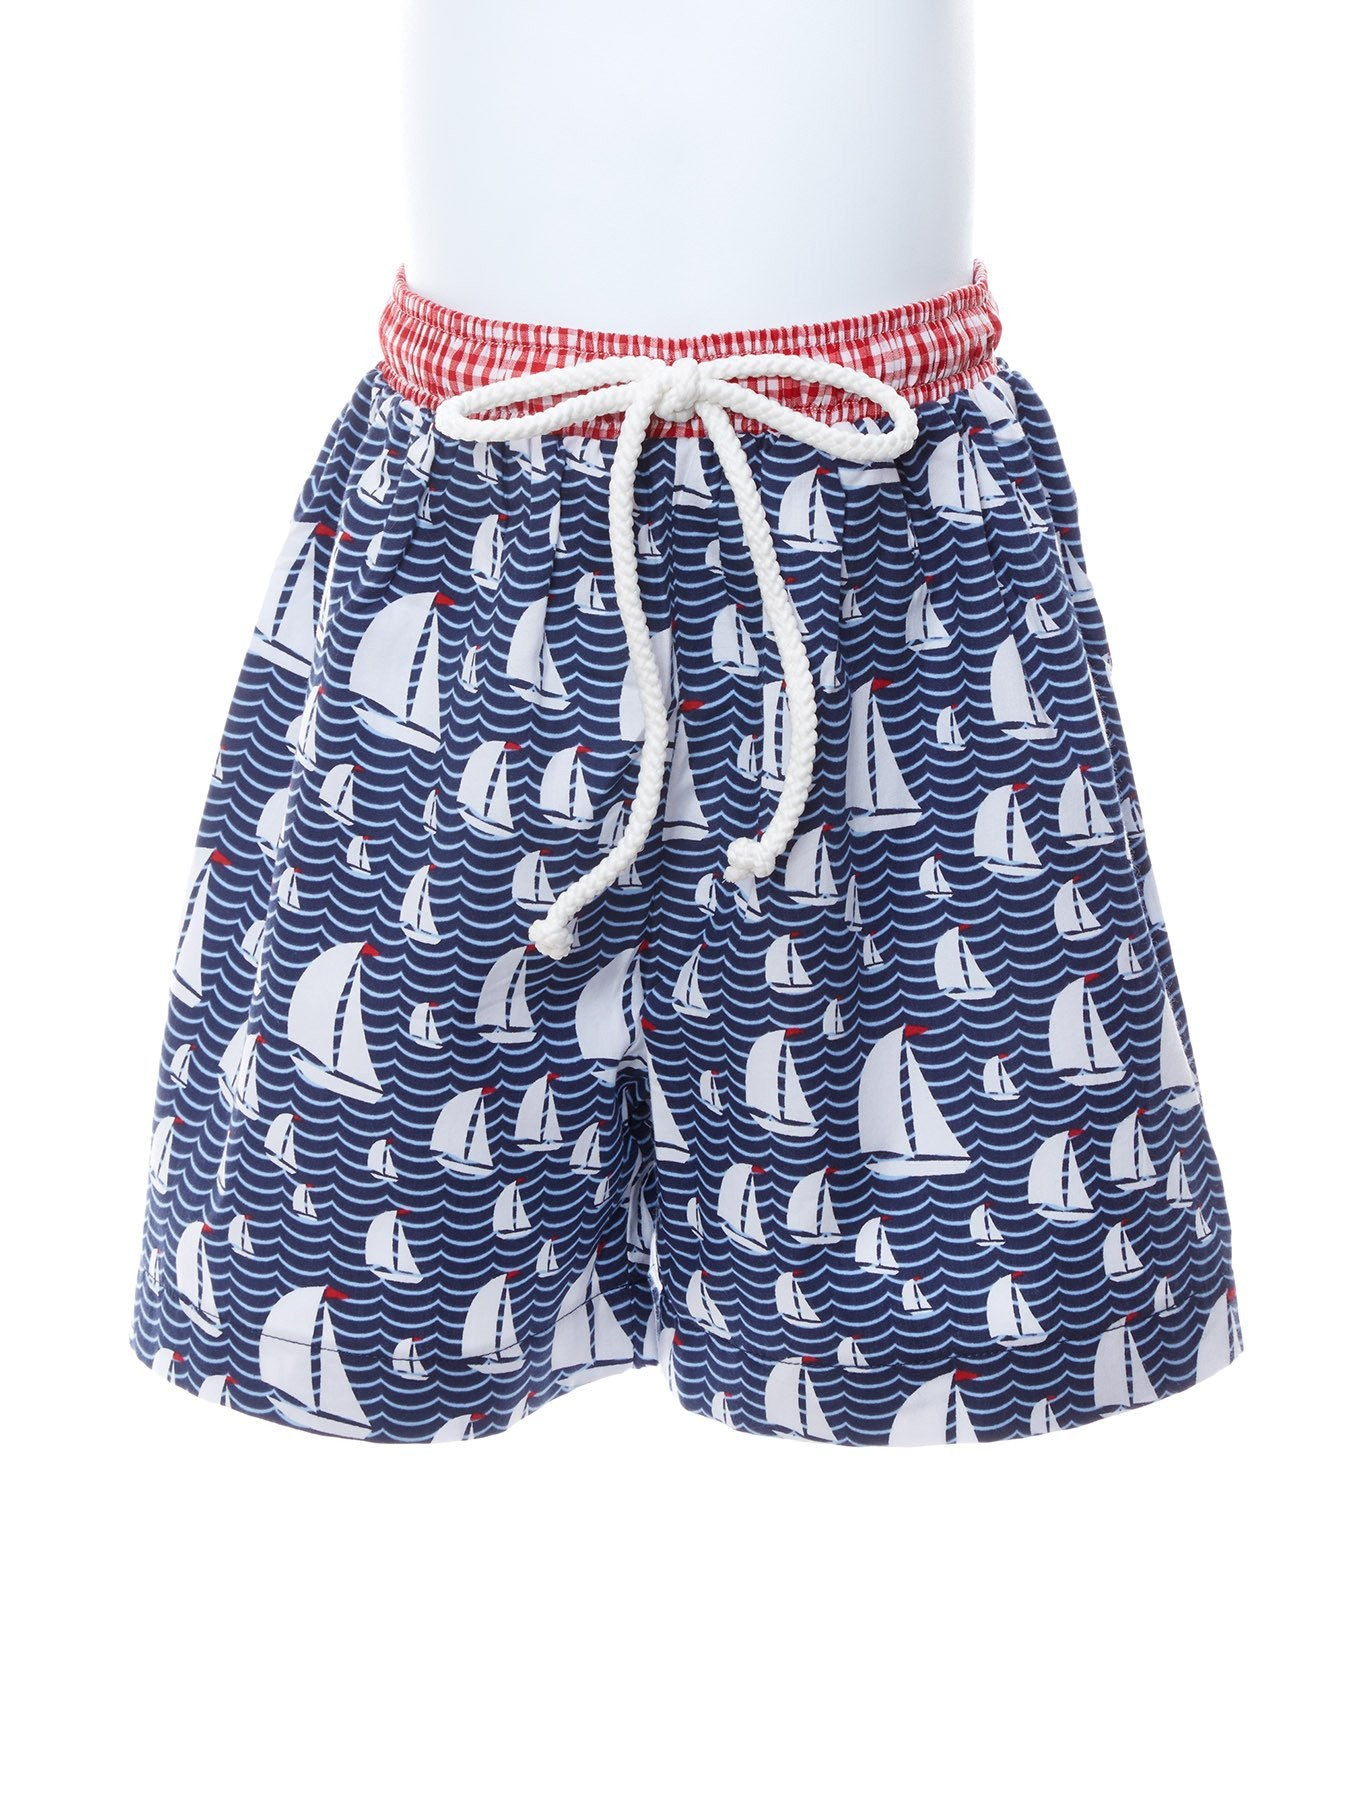 202bb51e8f Home > Products > Banana Split Baby Boy Sail Away Sailboat Swimsuit